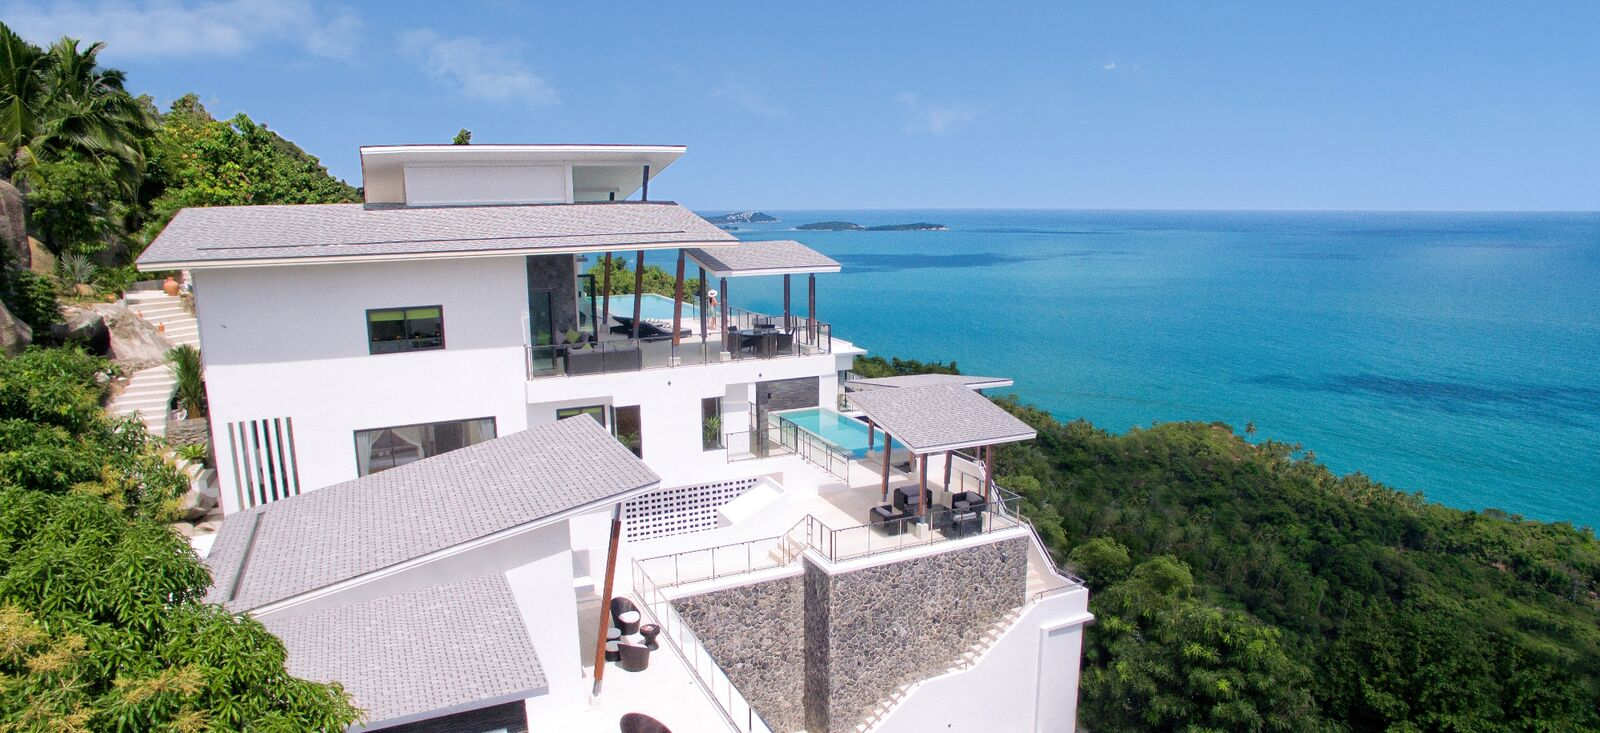 4 Bedroom Sea View Villa with Two Pools at Chaweng Koh Samui